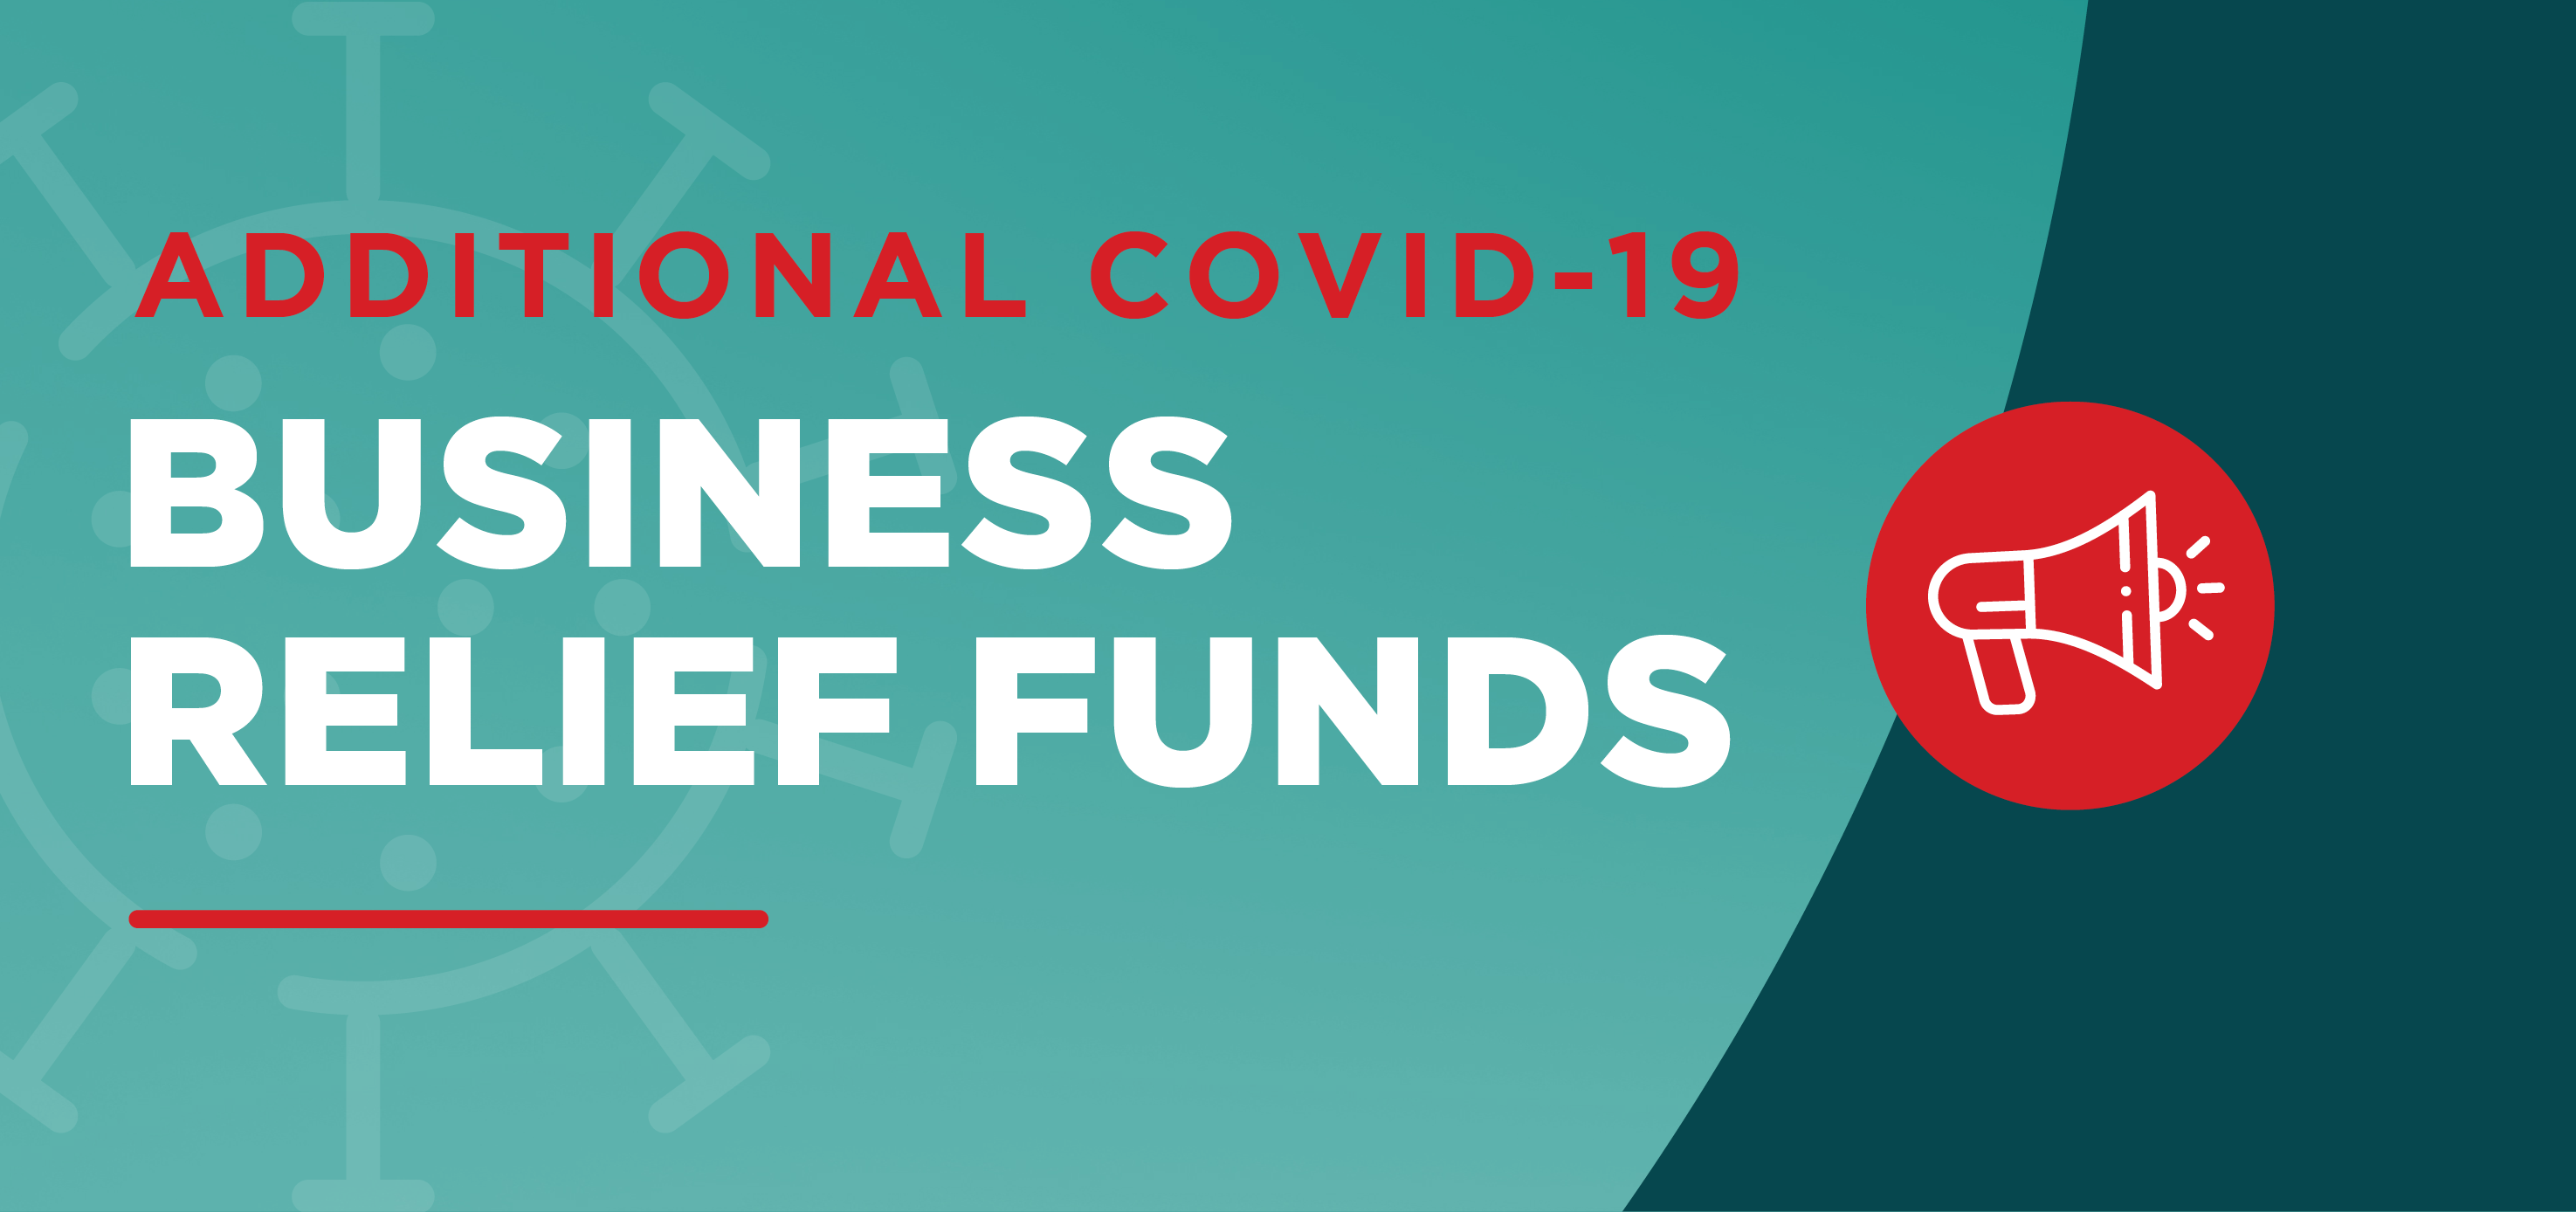 COVID_Additional_Small_Business_Relief_Funding_Secondary_Blog_708x333.png